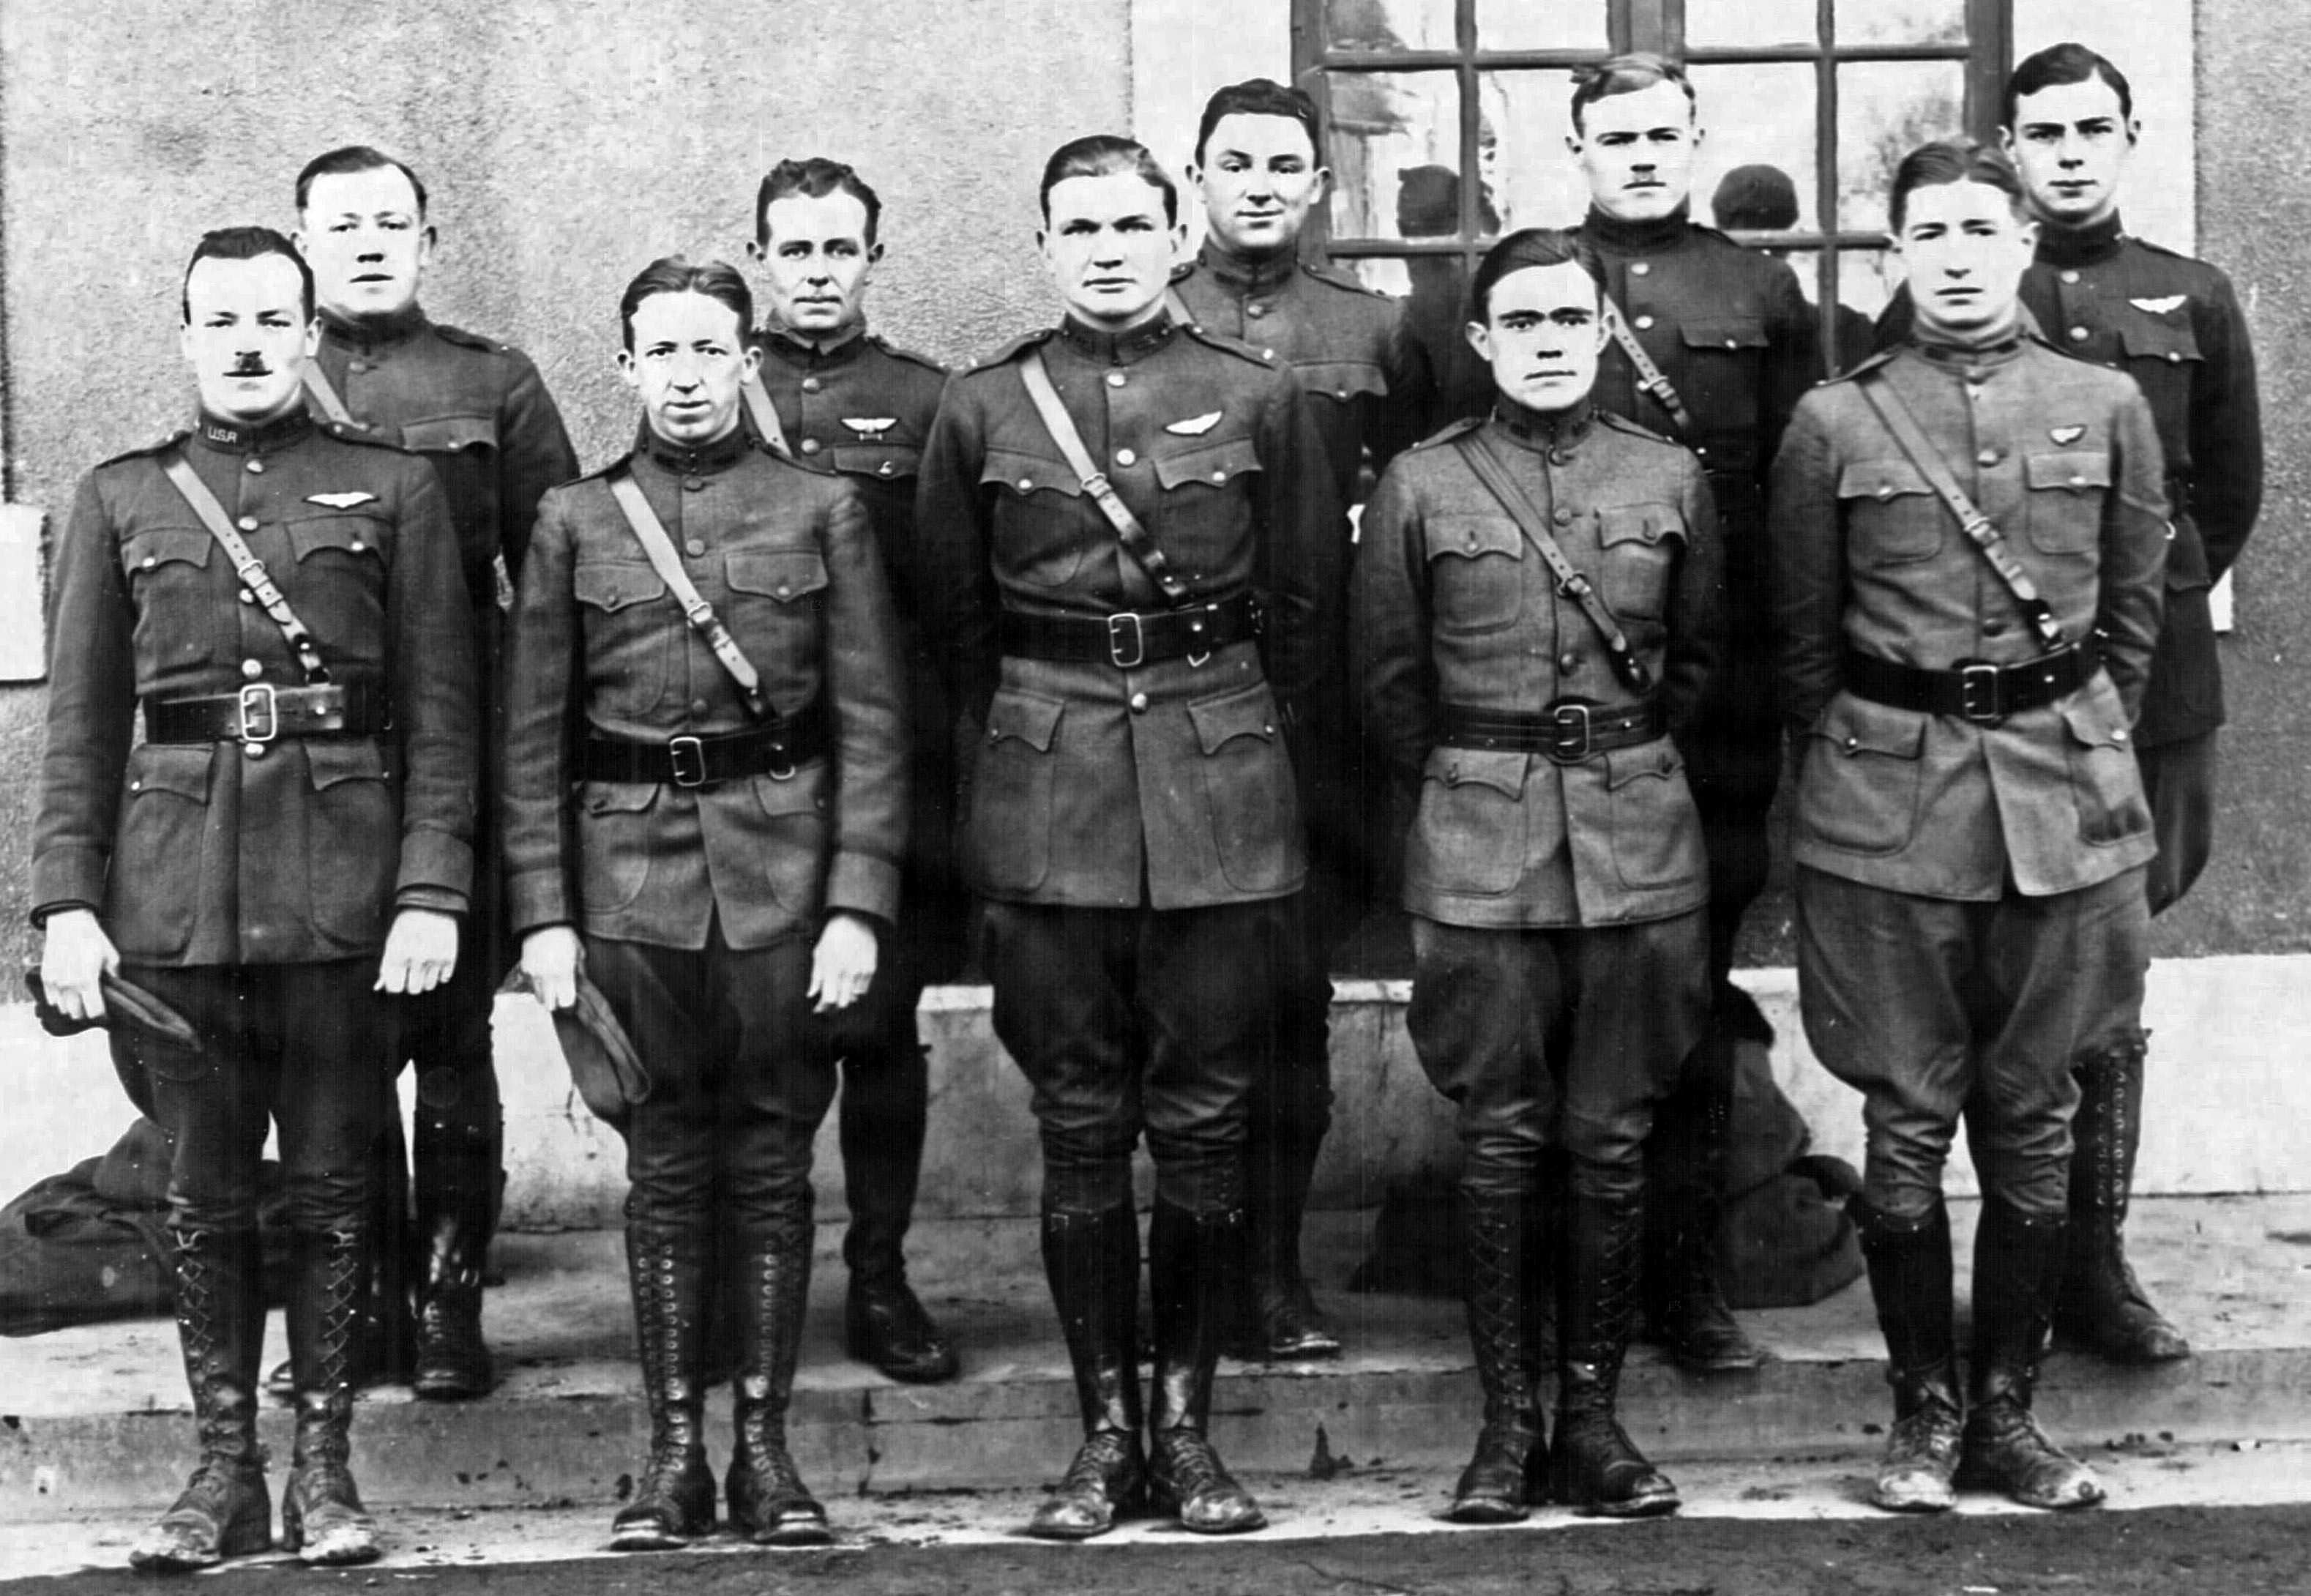 A photo of ten men in uniform, posing rather stiffly in two rows before a stone house with mullioned windows.